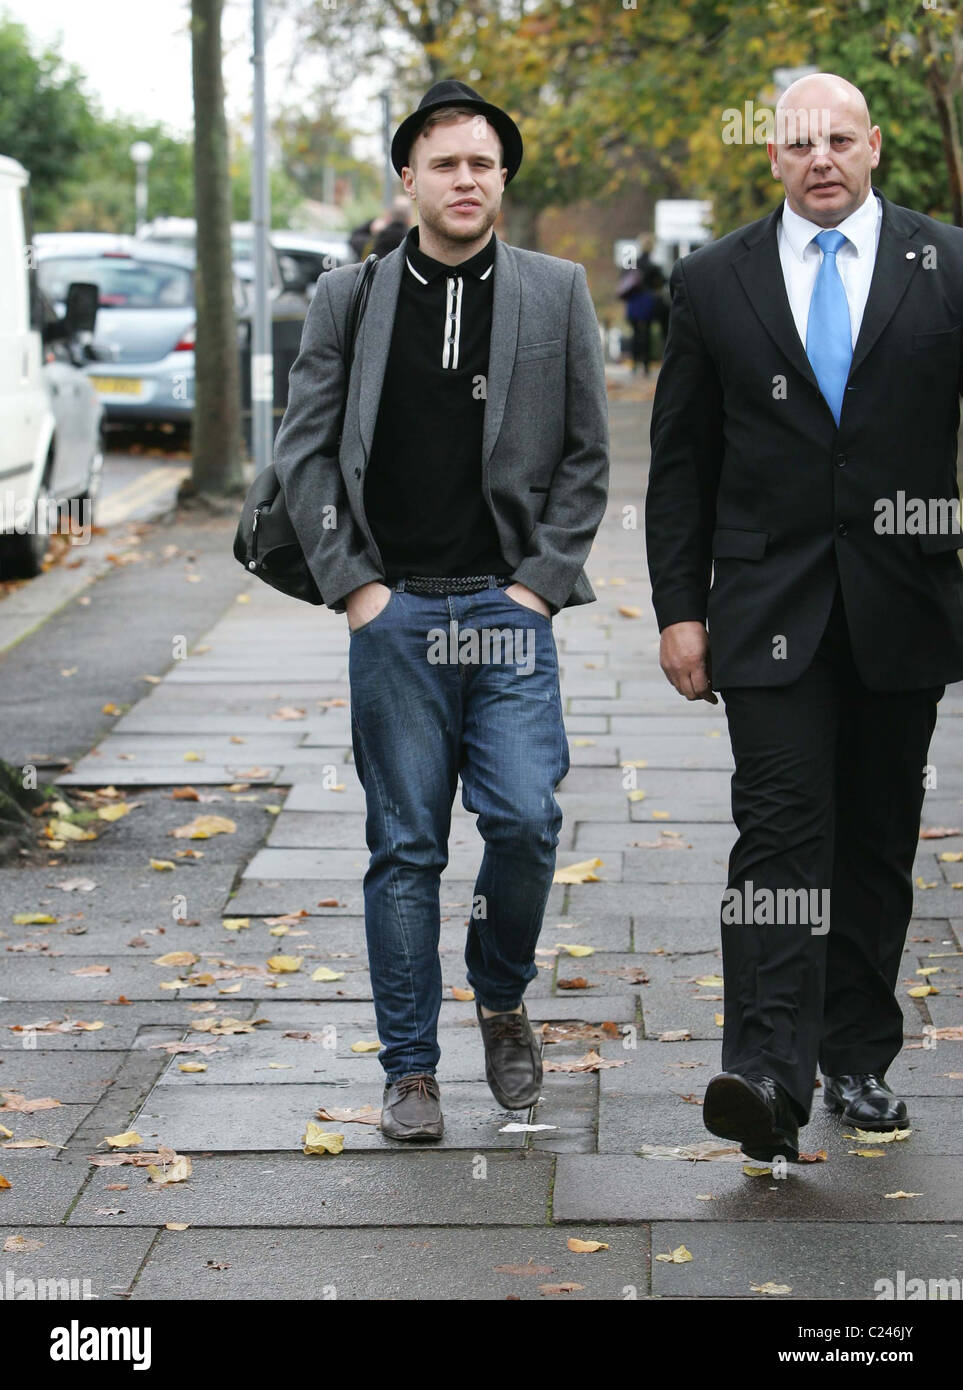 Stock photo x factor finalist olly murs steps out of the house to go for lunch accompanied by a security guard london england 03 11 09